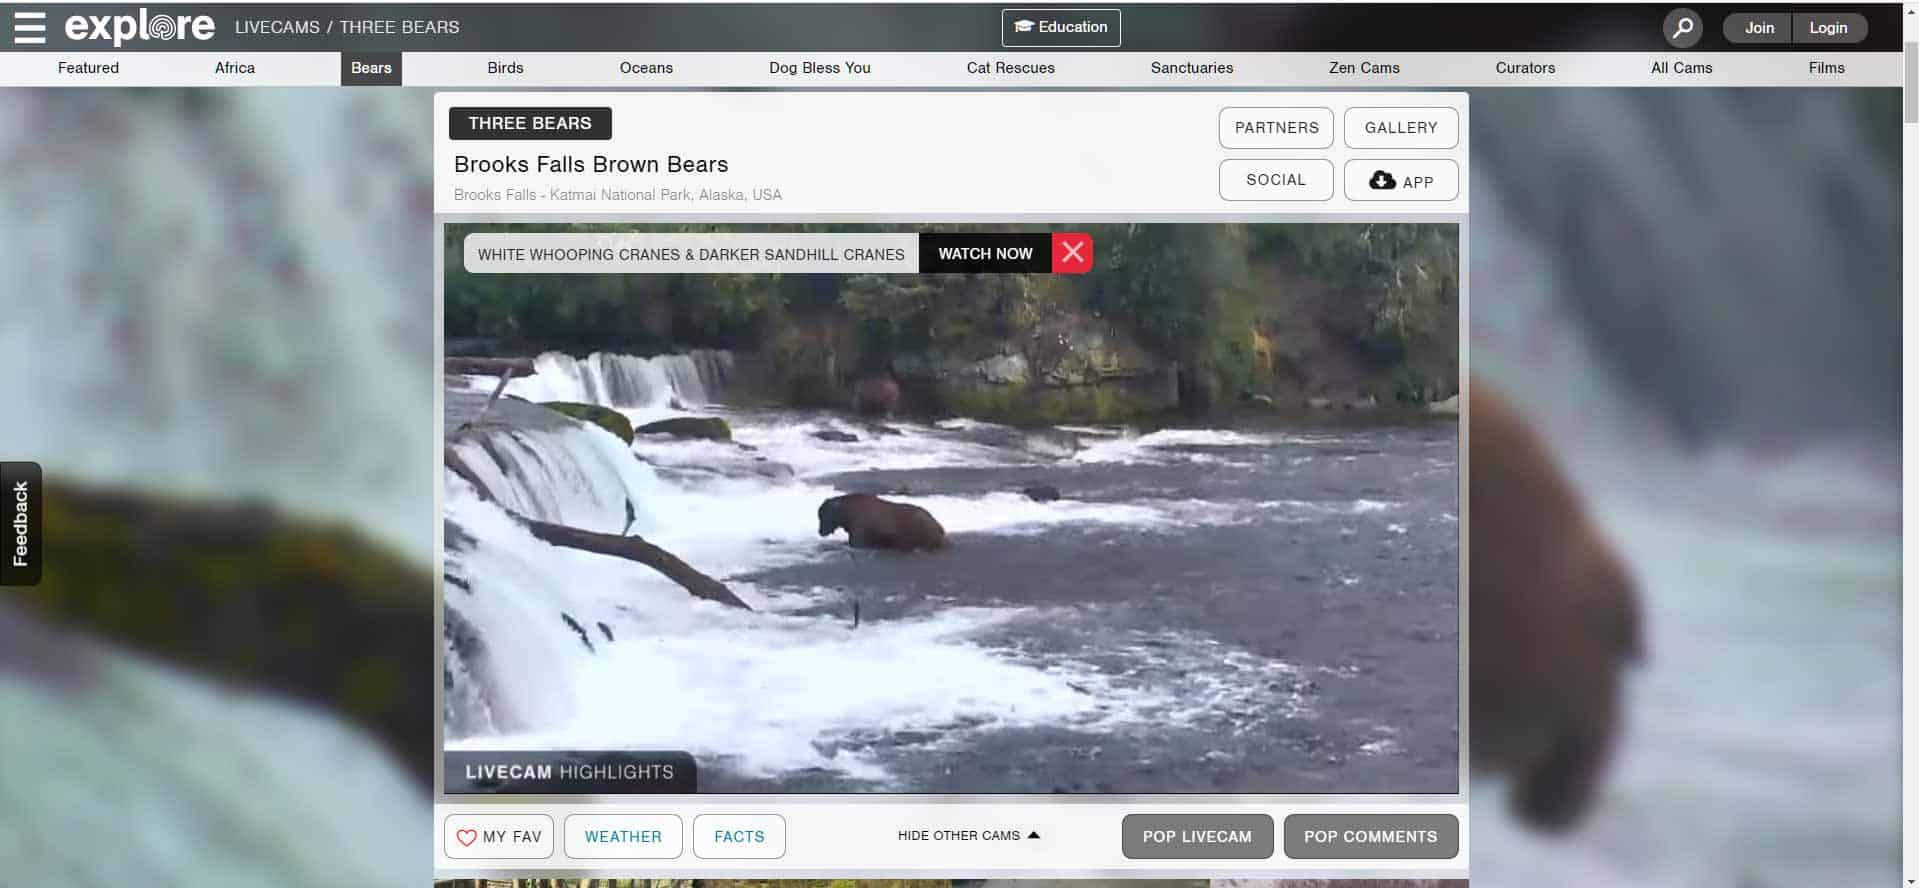 bears-in-a-river-getting-trout